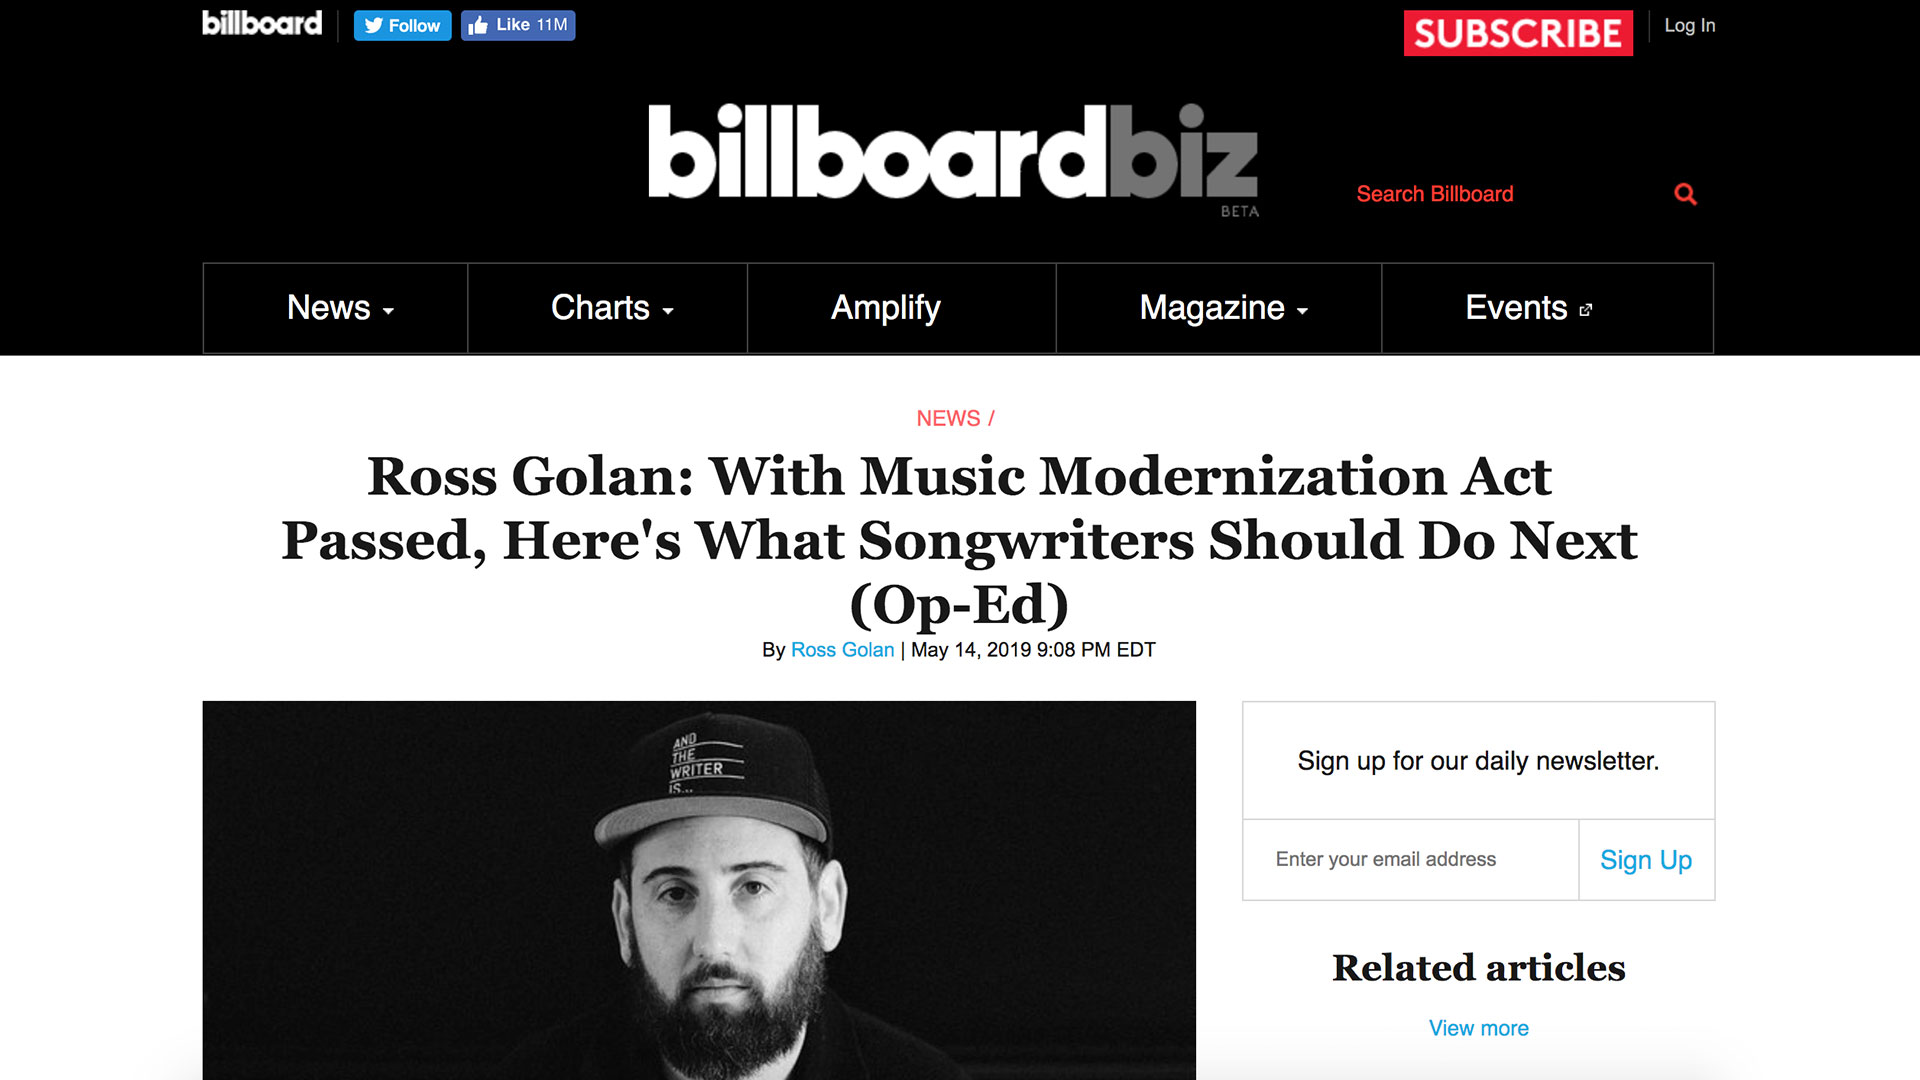 Fairness Rocks News Ross Golan: With Music Modernization Act Passed, Here's What Songwriters Should Do Next (Op-Ed)